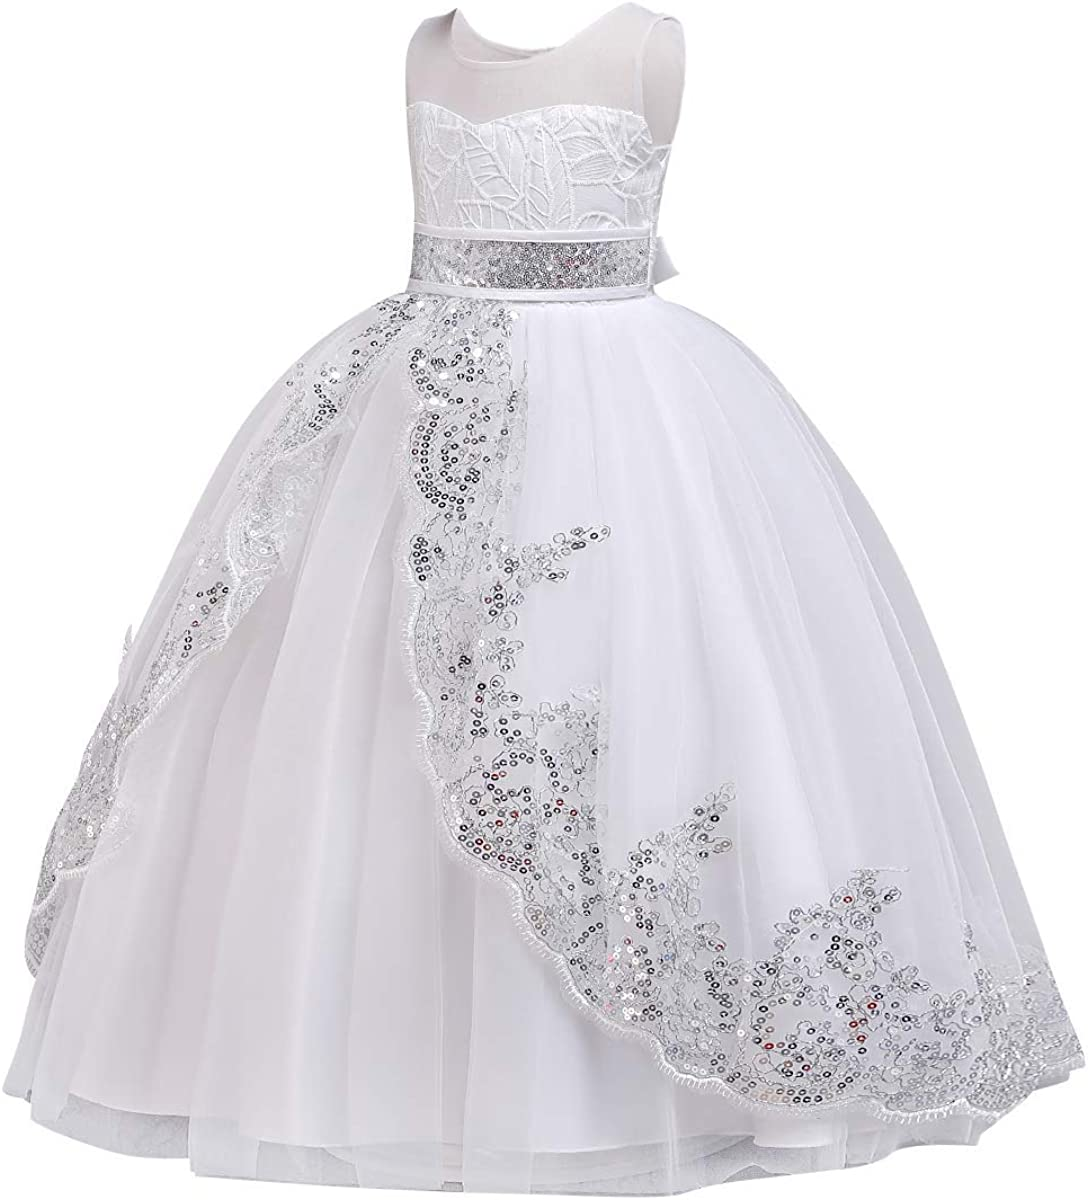 Flowers Girls Embroidery Tulle Sequin Lace Junior Wedding Party Maxi Dress Communion Princess Pageant Dance Evening Gowns